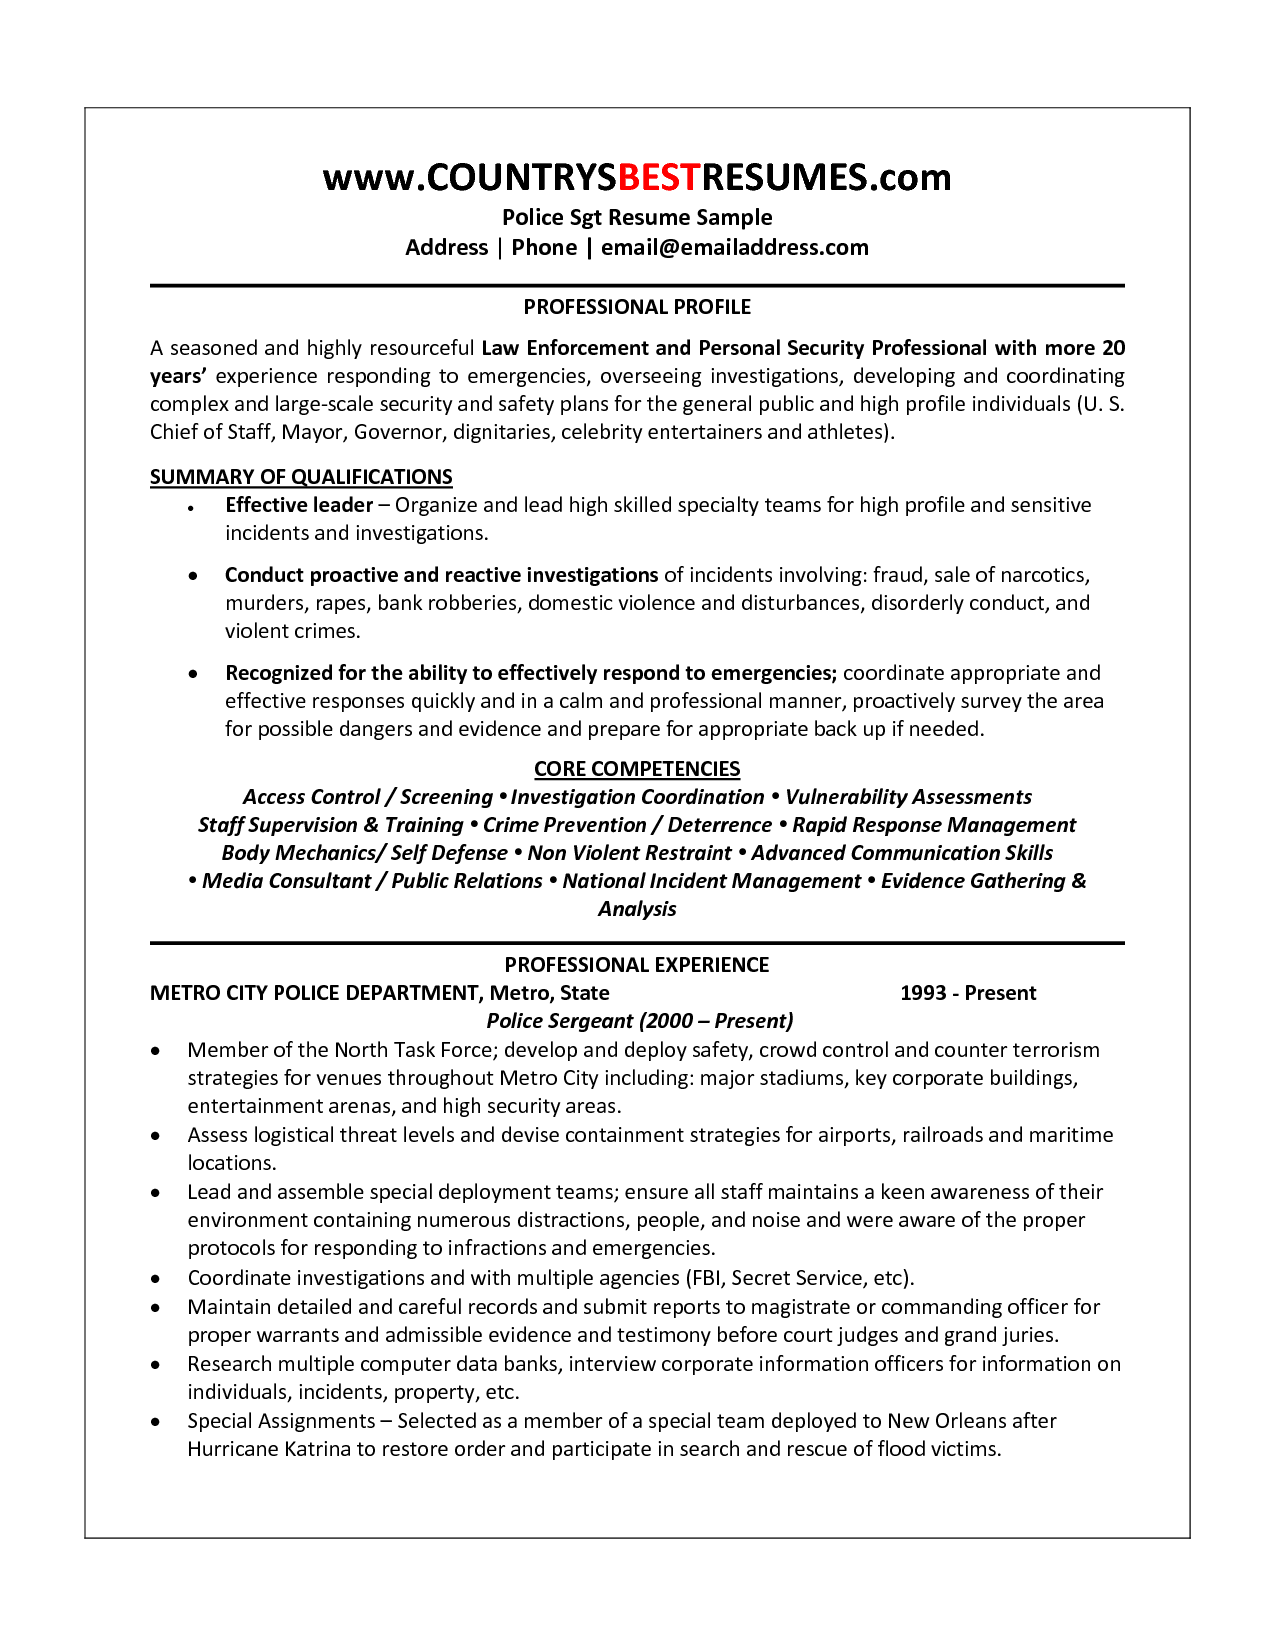 Police Officer Resume Sample - http://www.resumecareer.info/police ...